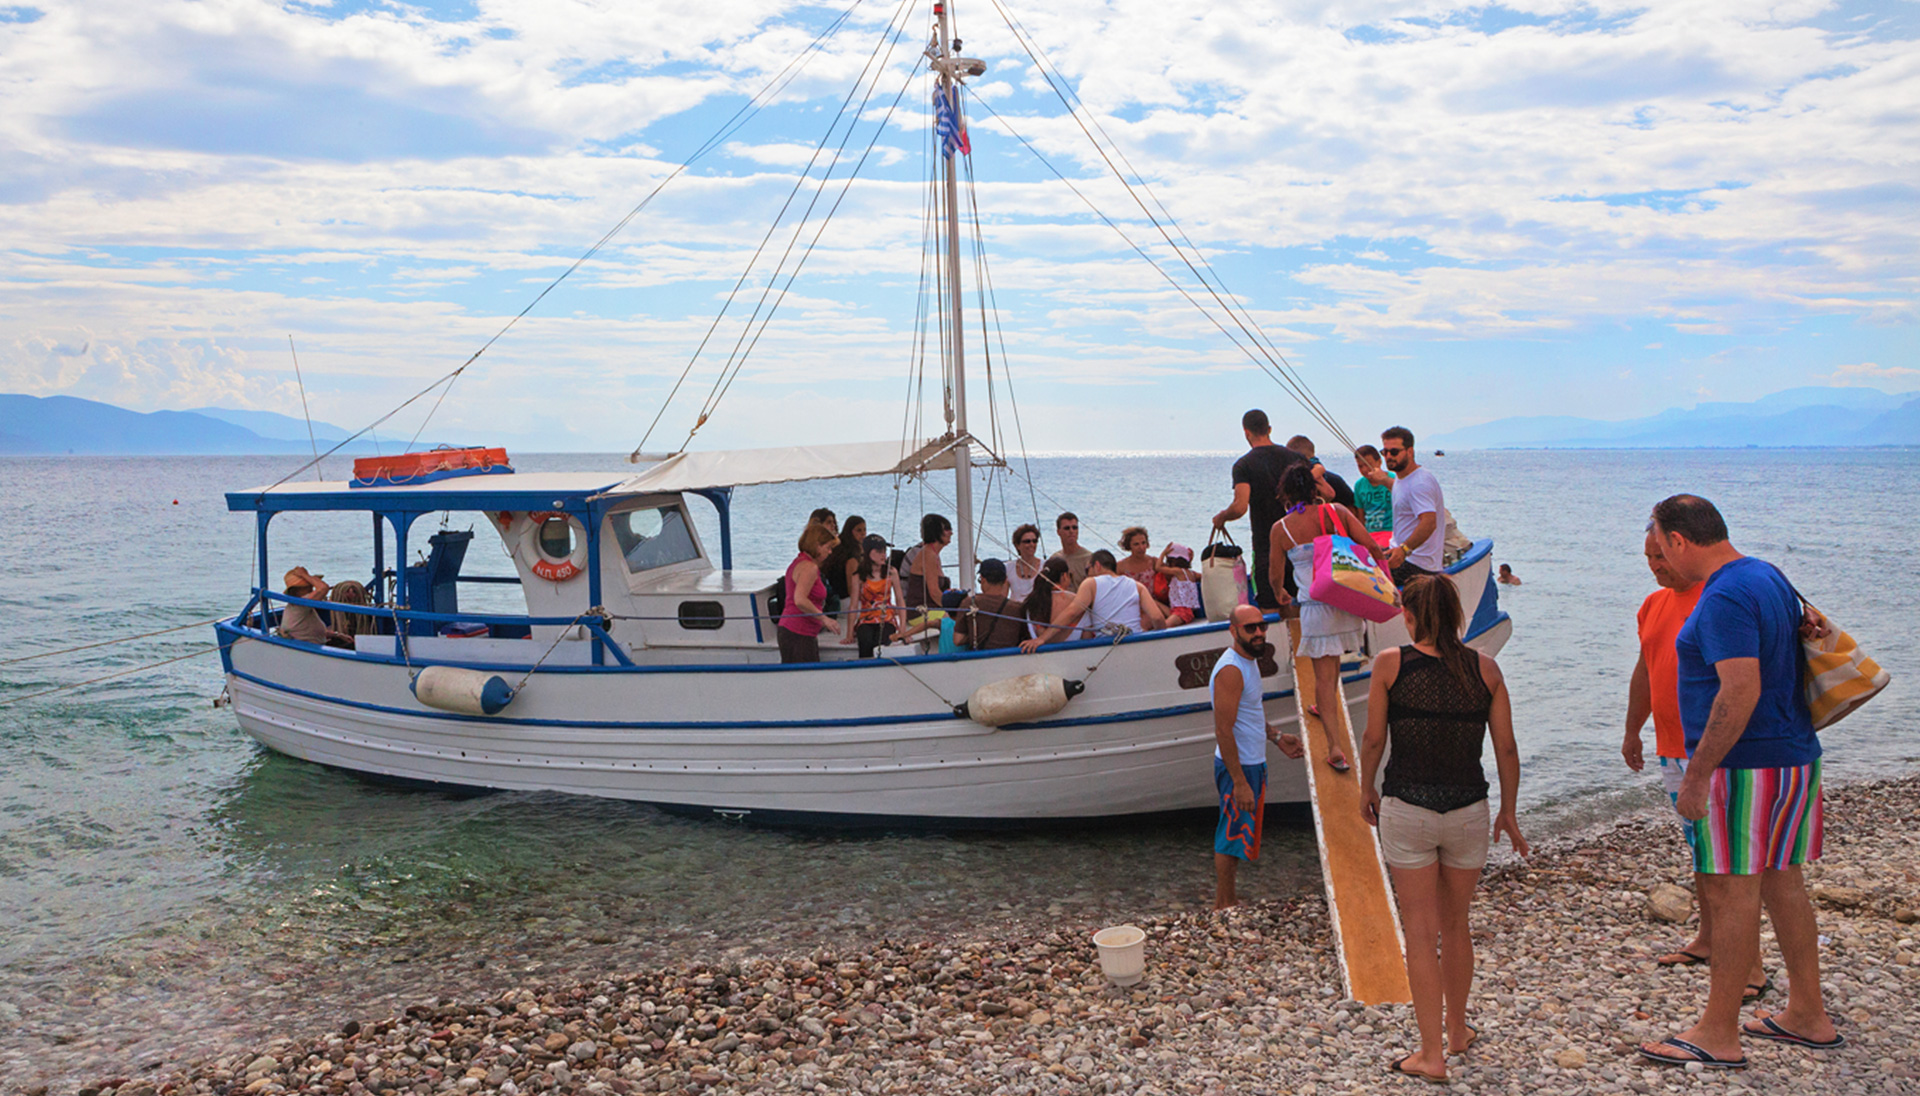 Boat Trip activity aigio